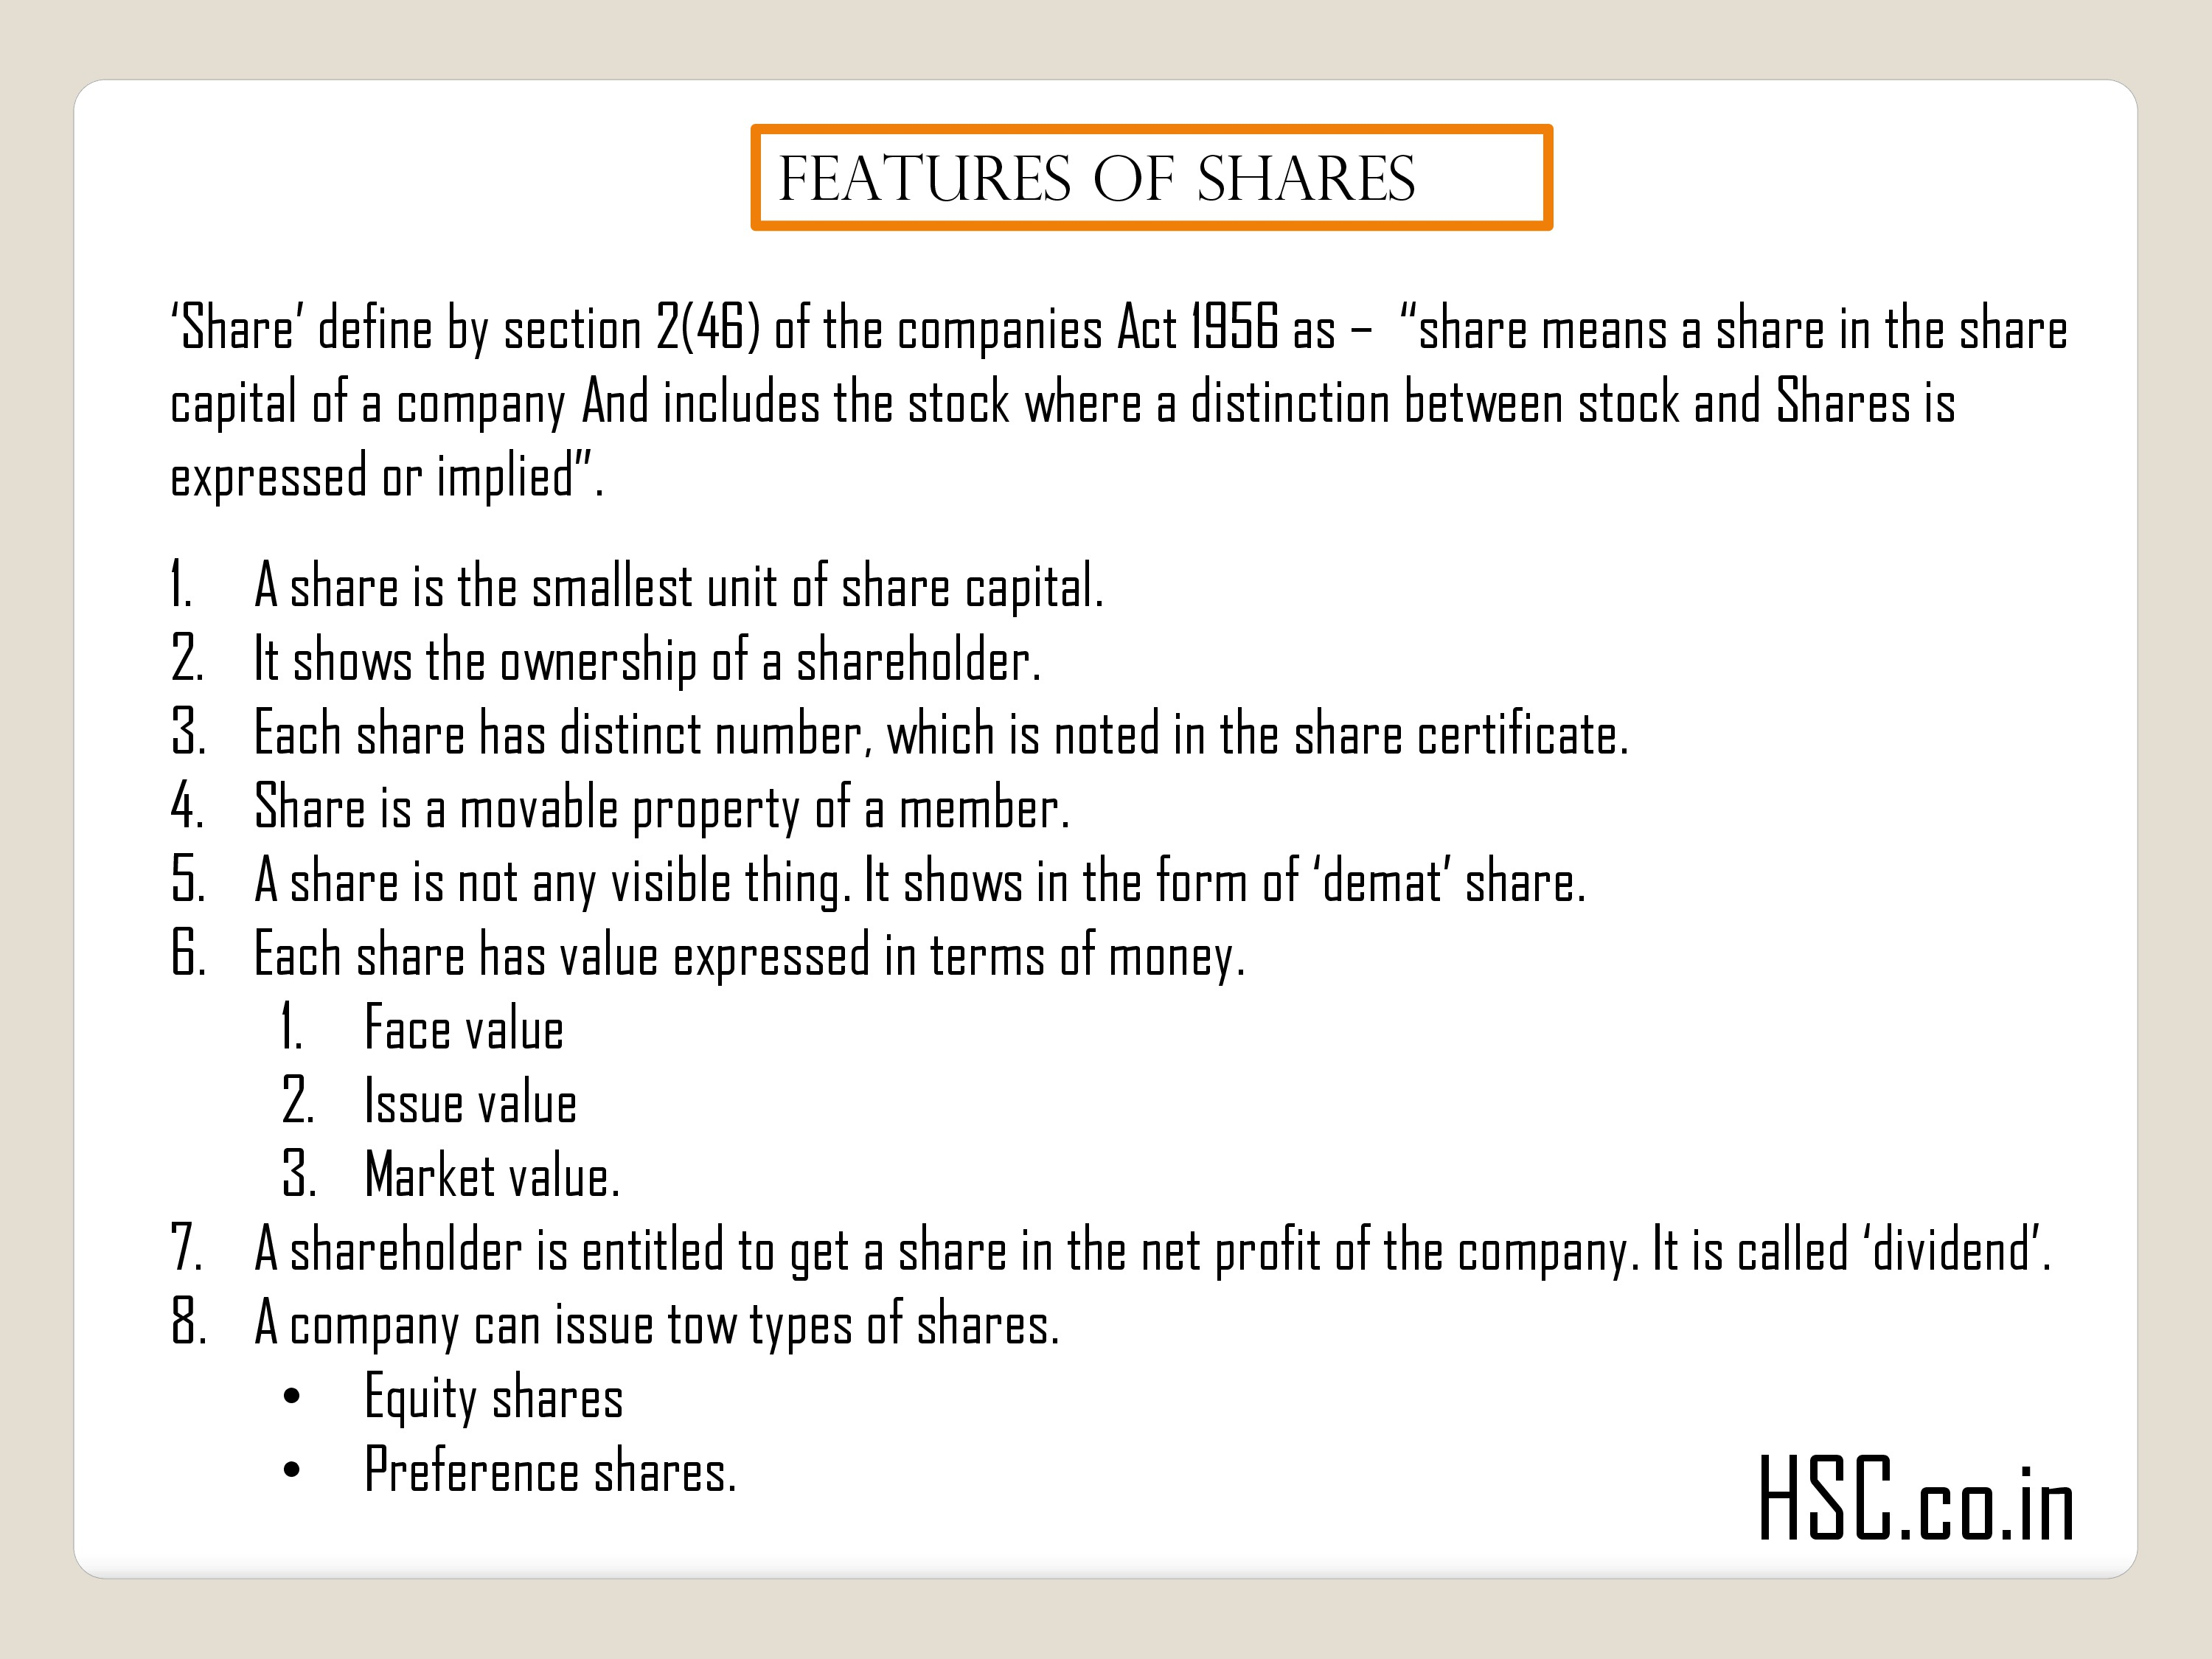 Features of shares